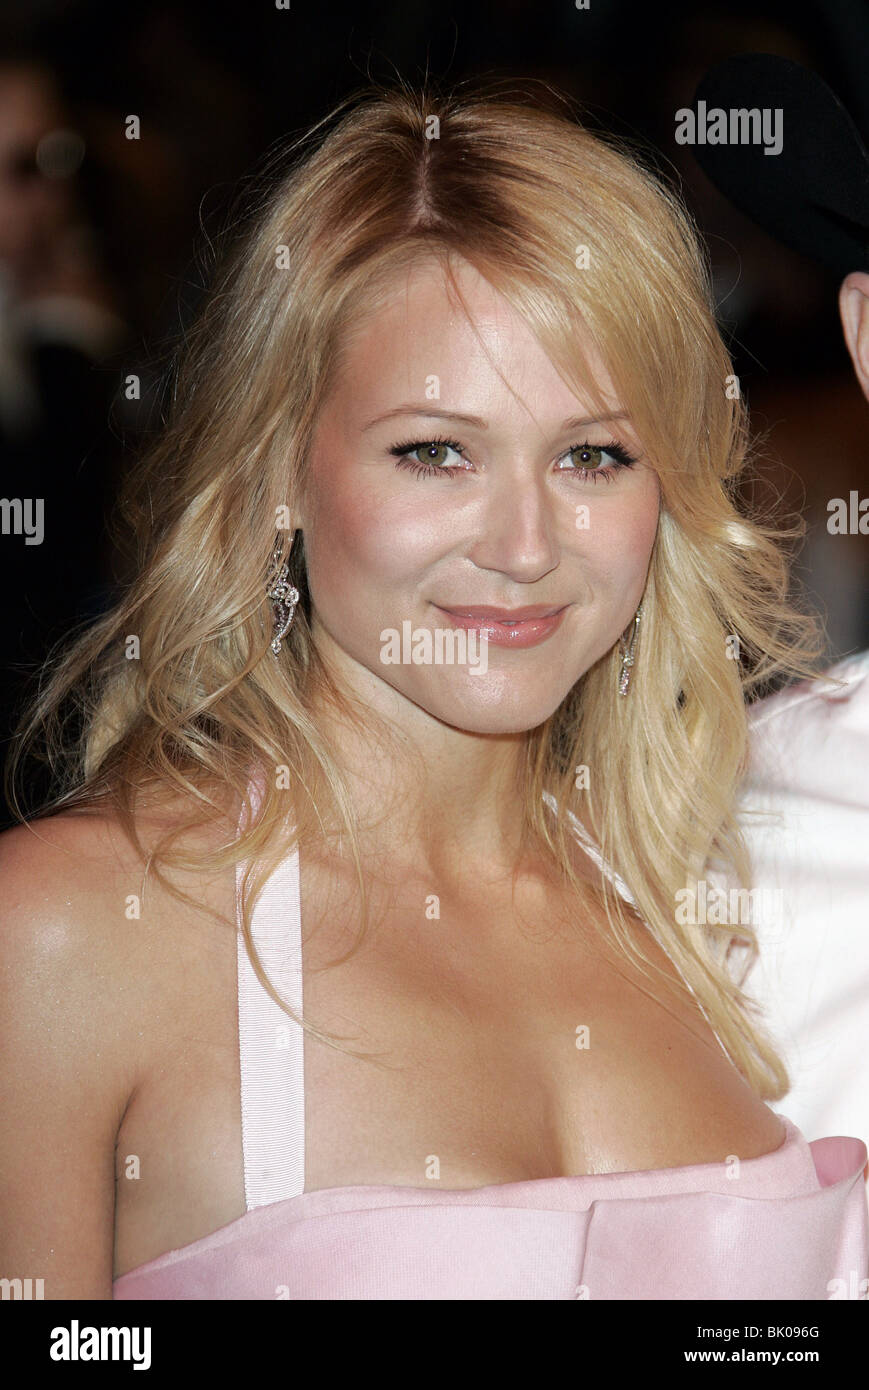 JEWEL VANITY FAIR PARTY 2006 MORTONS WEST HOLLYWOOD LOS ANGELES USA 05 March 2006 - Stock Image